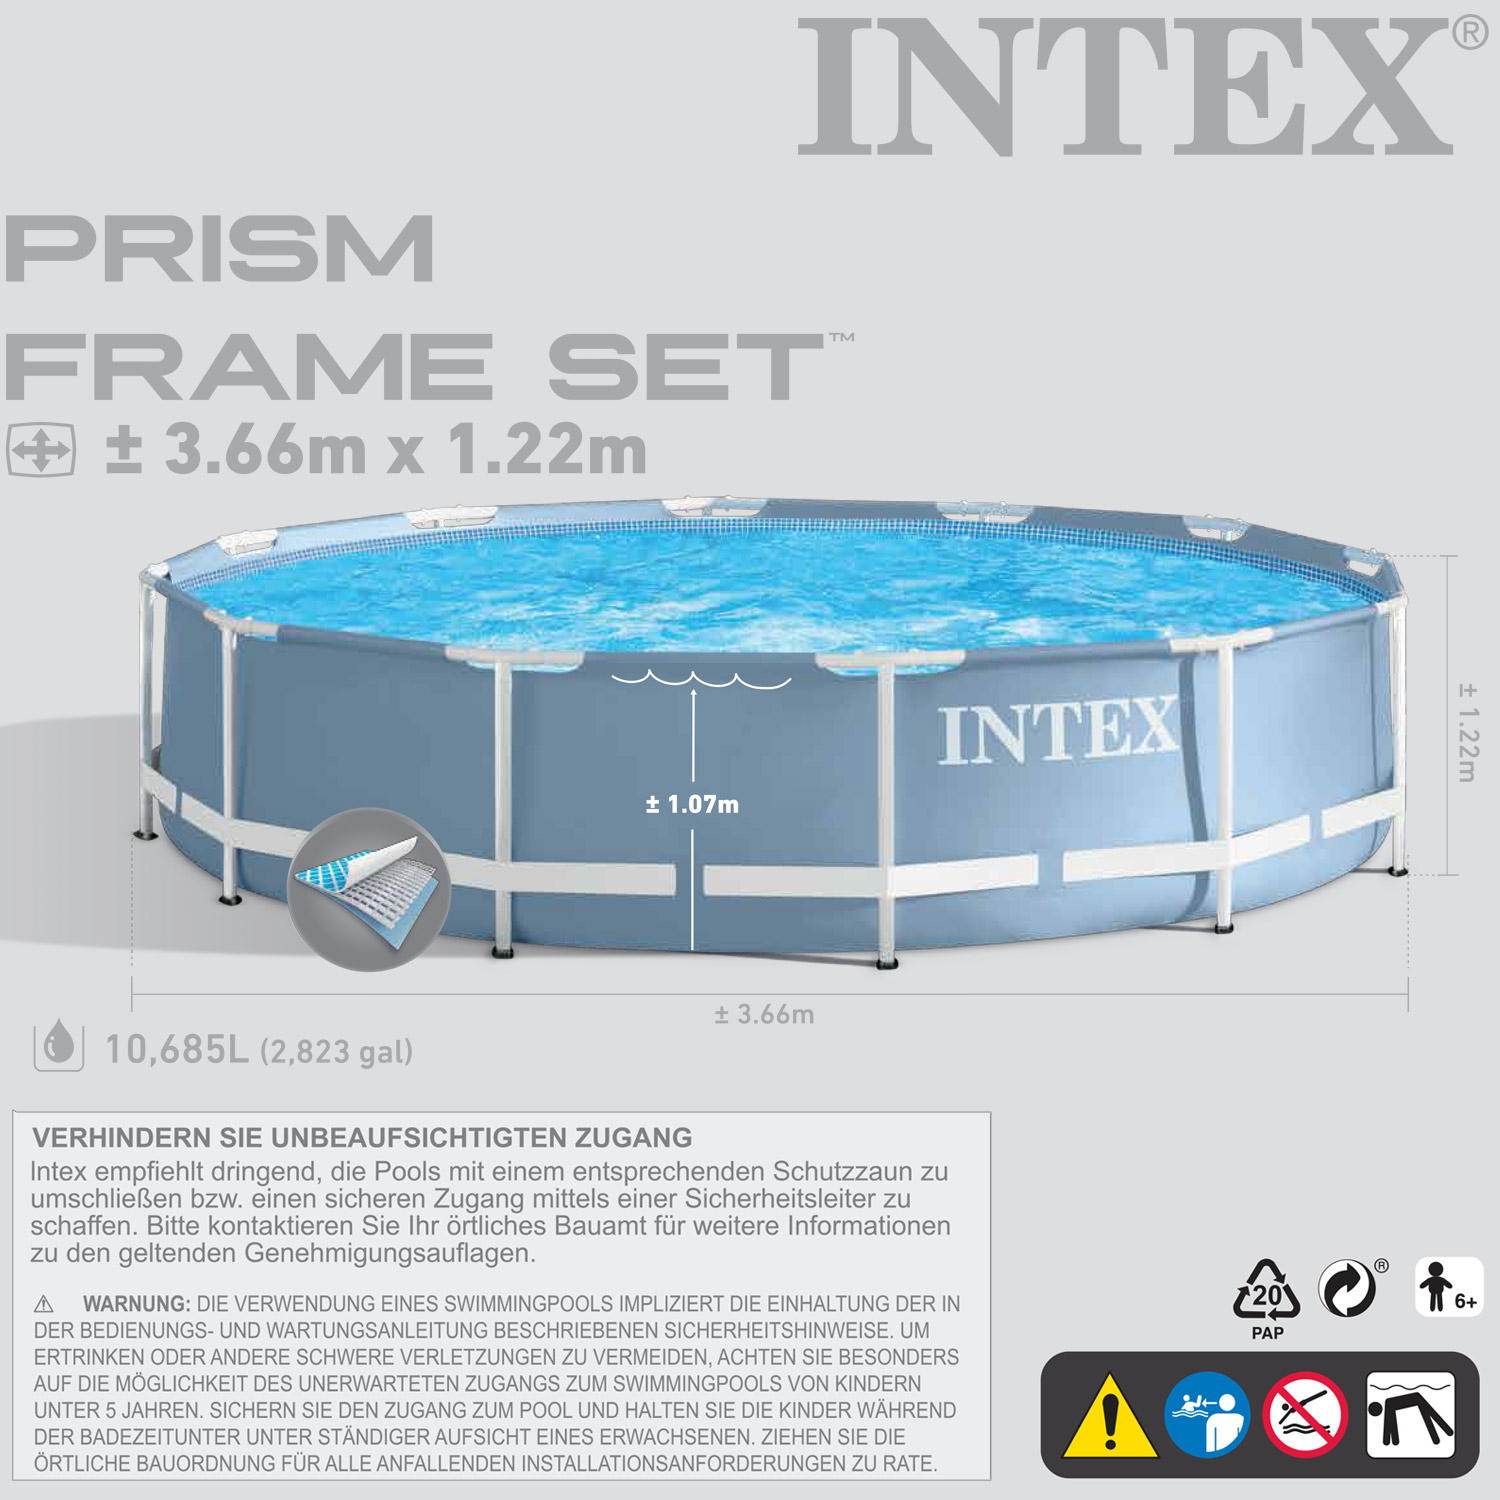 intex swimming pool frame 366x122 cm mit leiter filterpumpe solarfolie 366. Black Bedroom Furniture Sets. Home Design Ideas